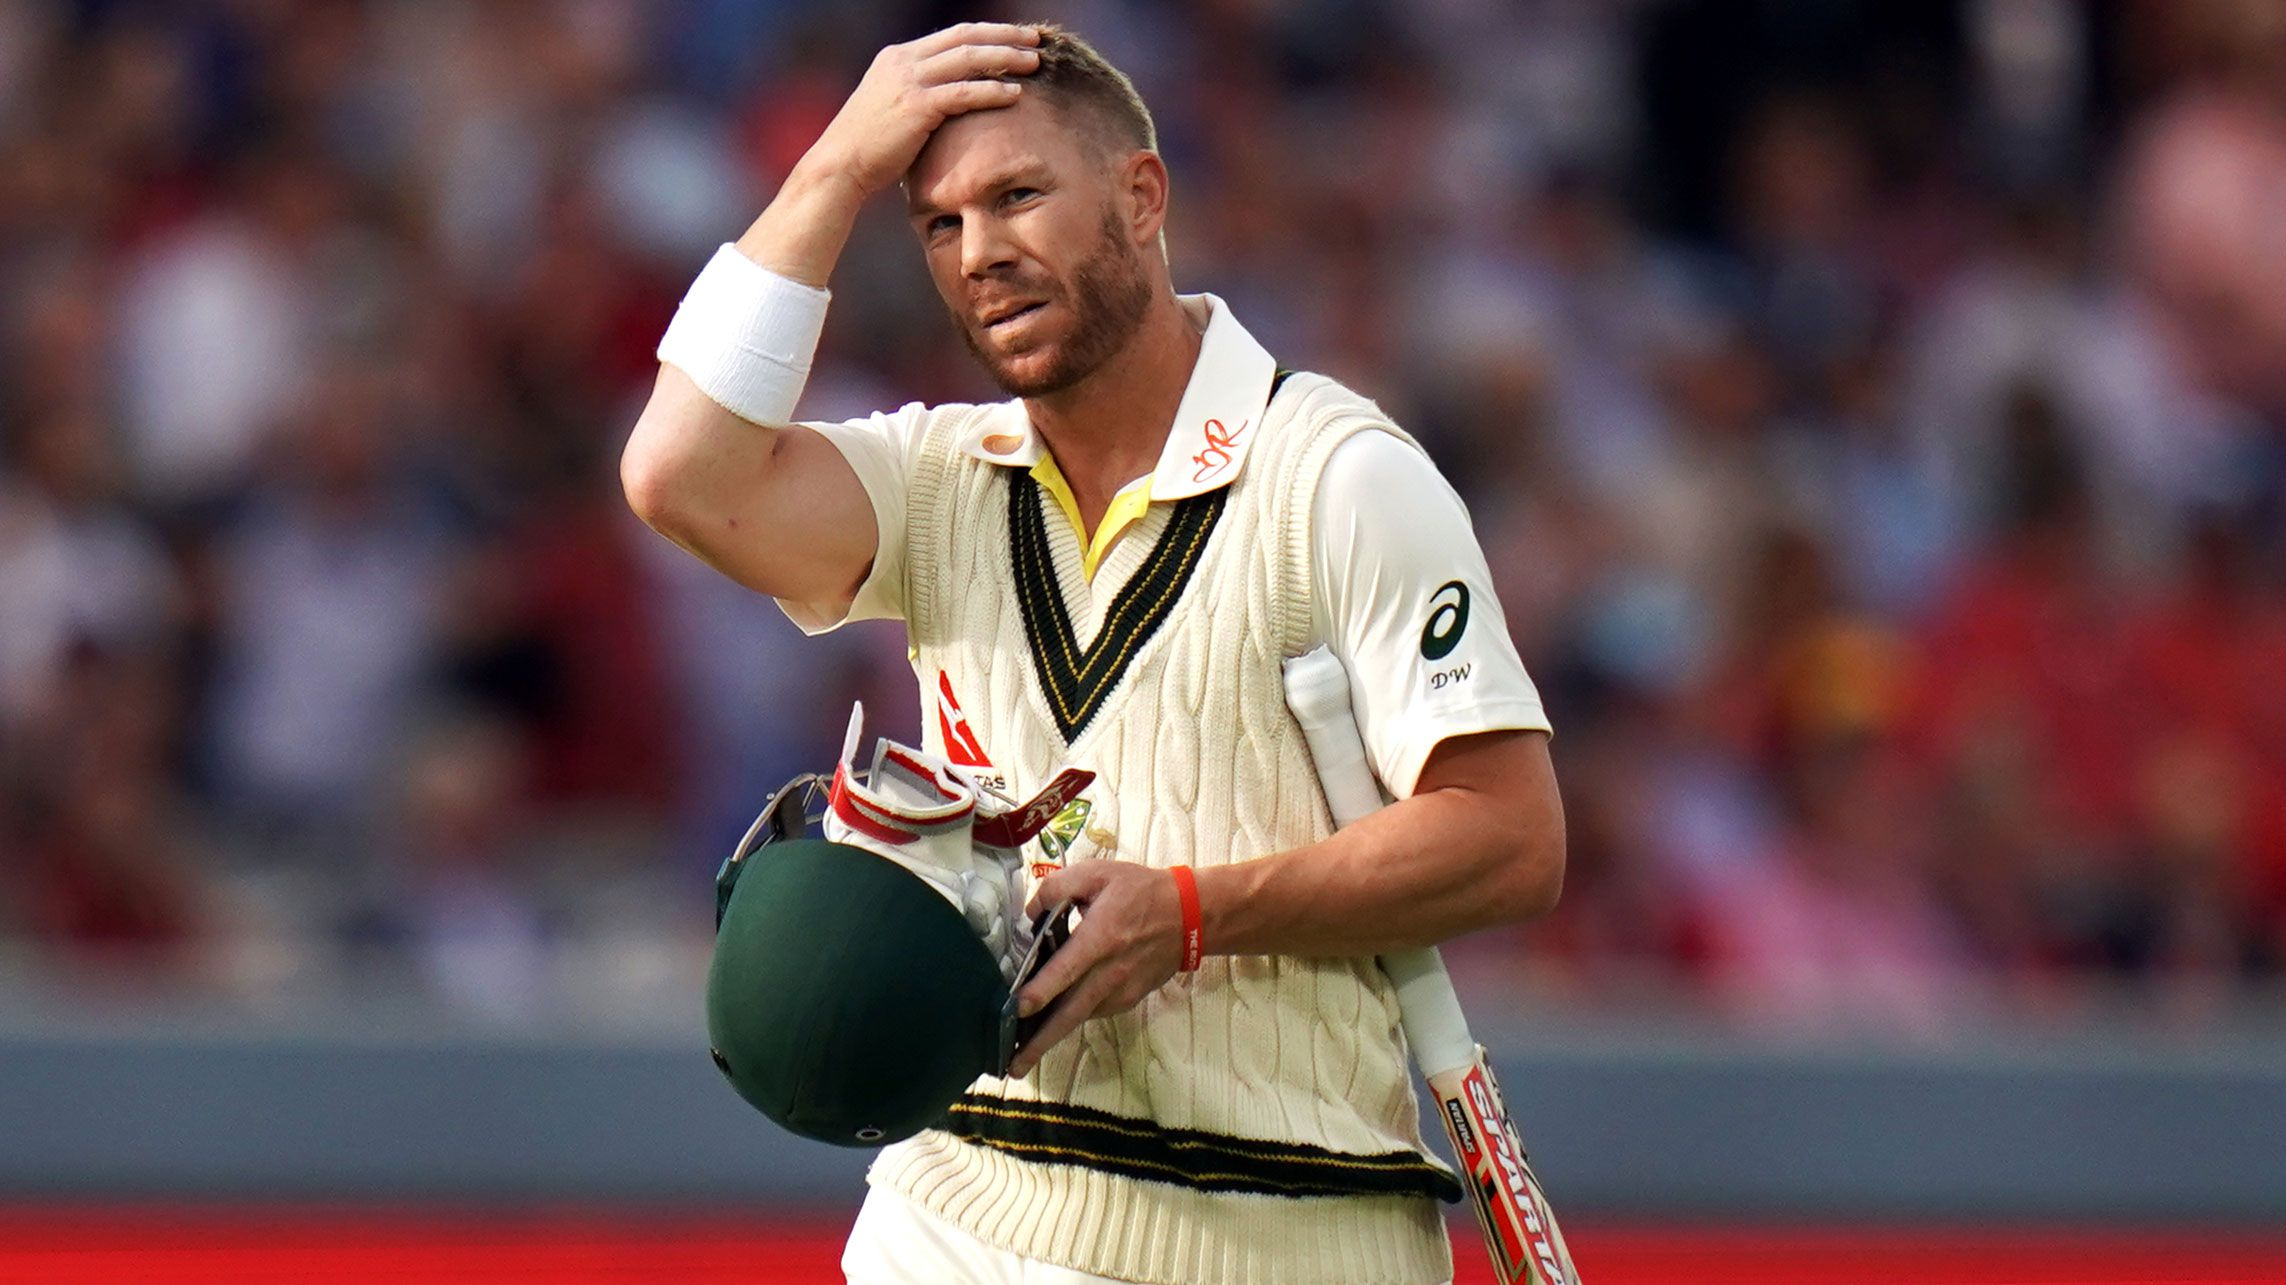 Mark Taylor on the danger of David Warner's poor form for Australia in the Ashes